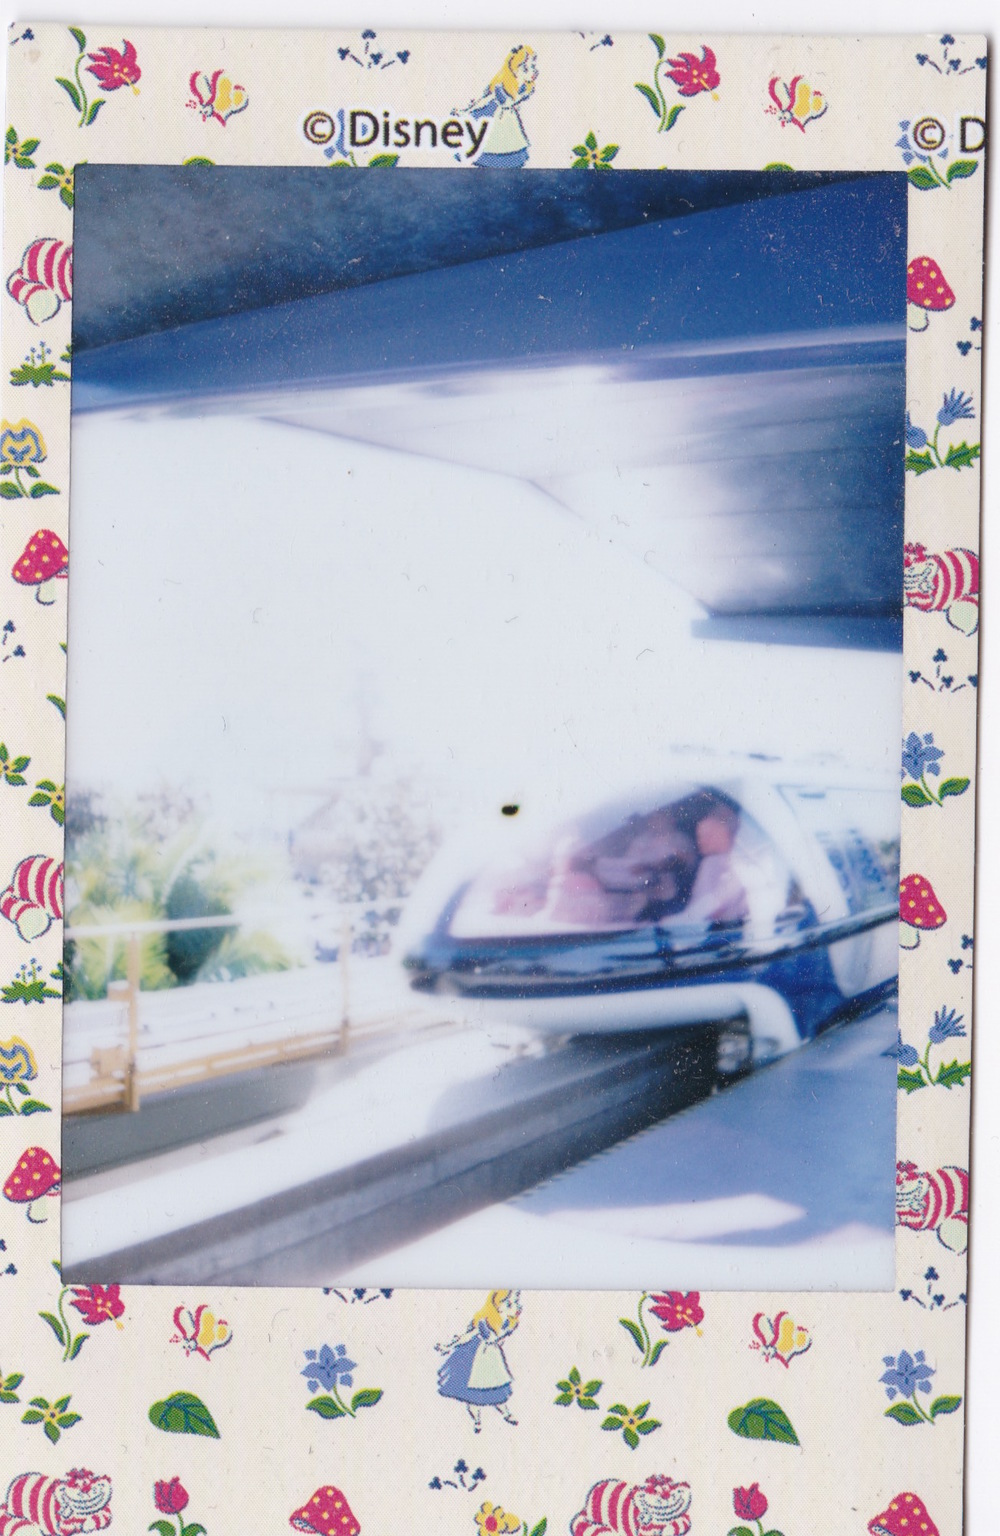 Disneyland Instax on ourcitylights019.jpeg